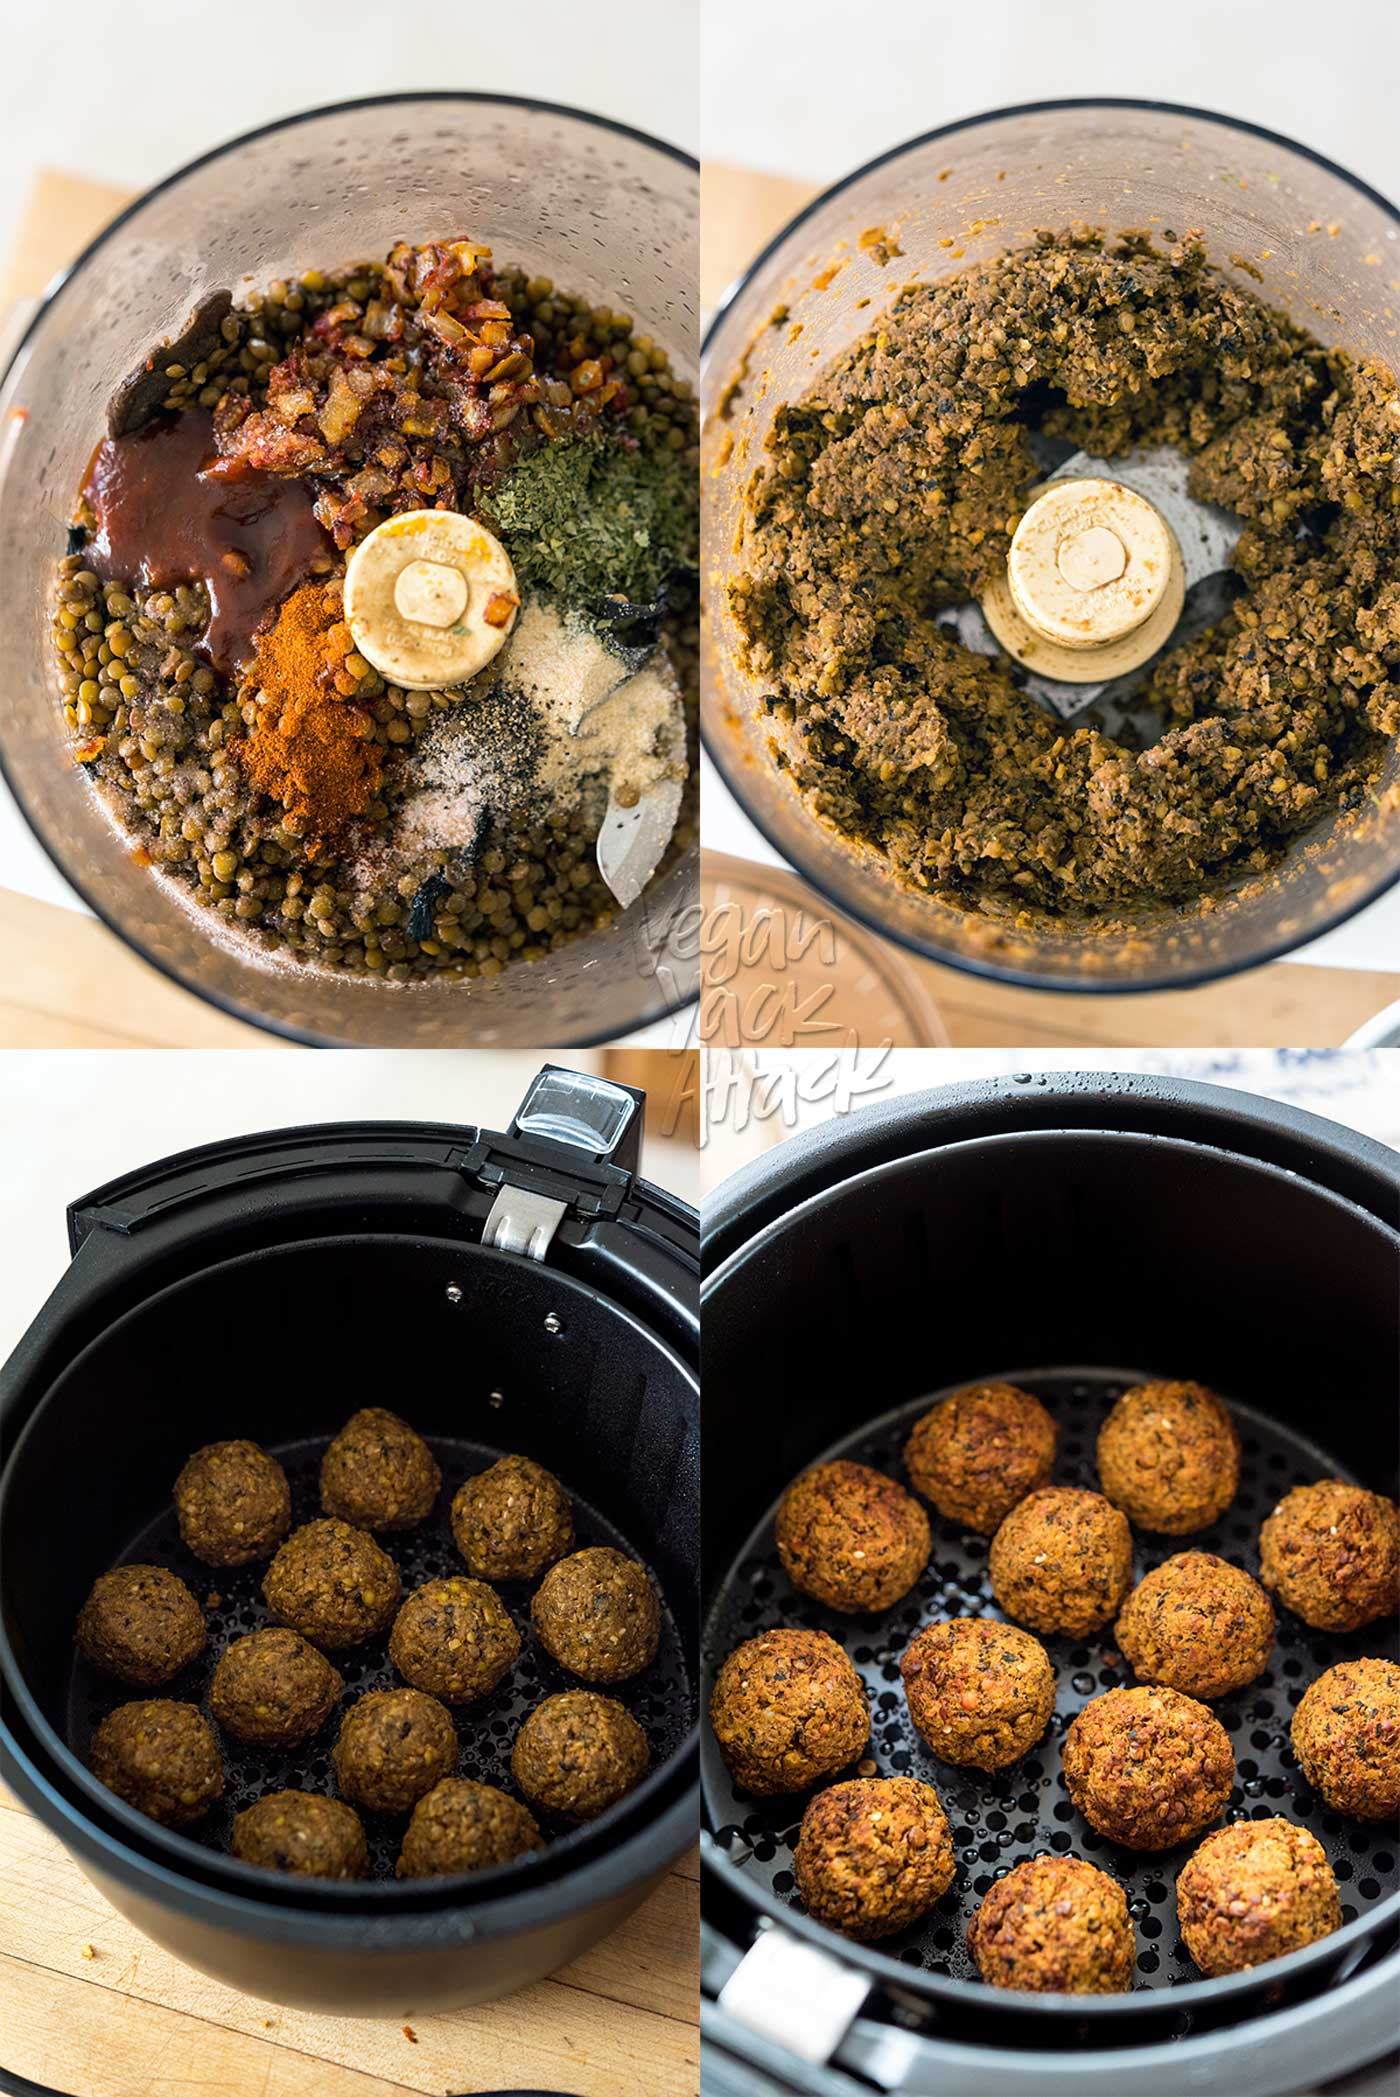 Need another use for lentils? Try out these Air Fryer BBQ Lentil Meatballs! Chewy and flavorful on the inside, while slightly crunchy on the outside, then slathered in your favorite BBQ sauce. #vegan #nutfree #airfryer #veganyackattack